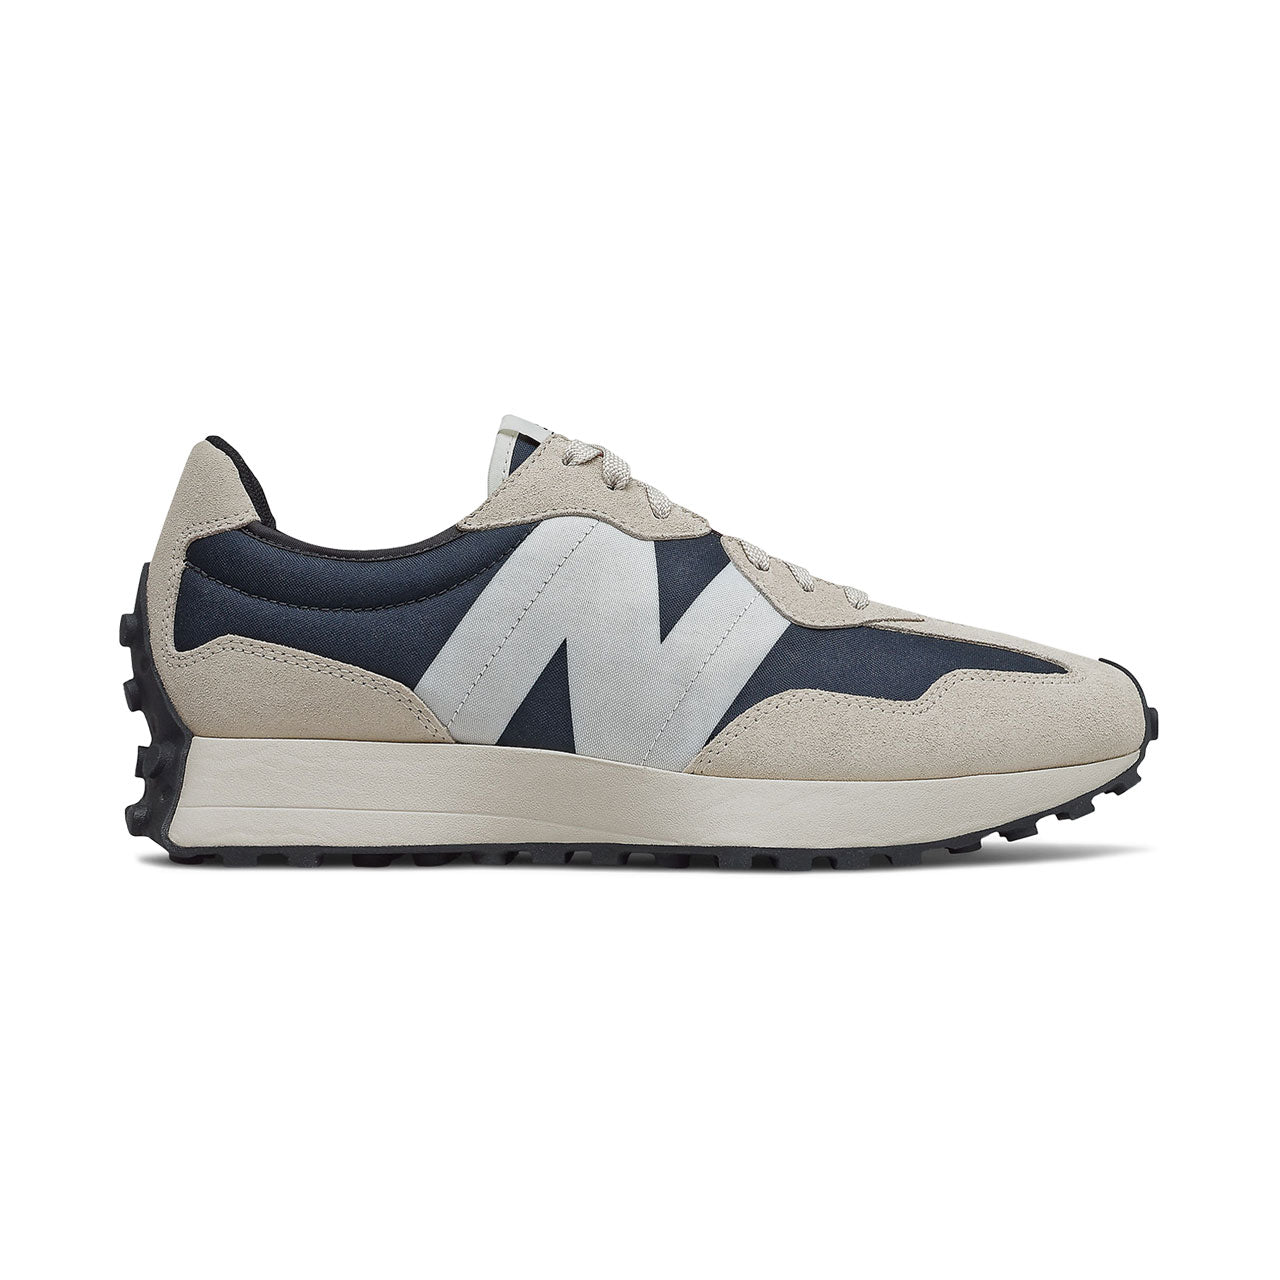 New Balance 327 Script Outerspace Sneakers